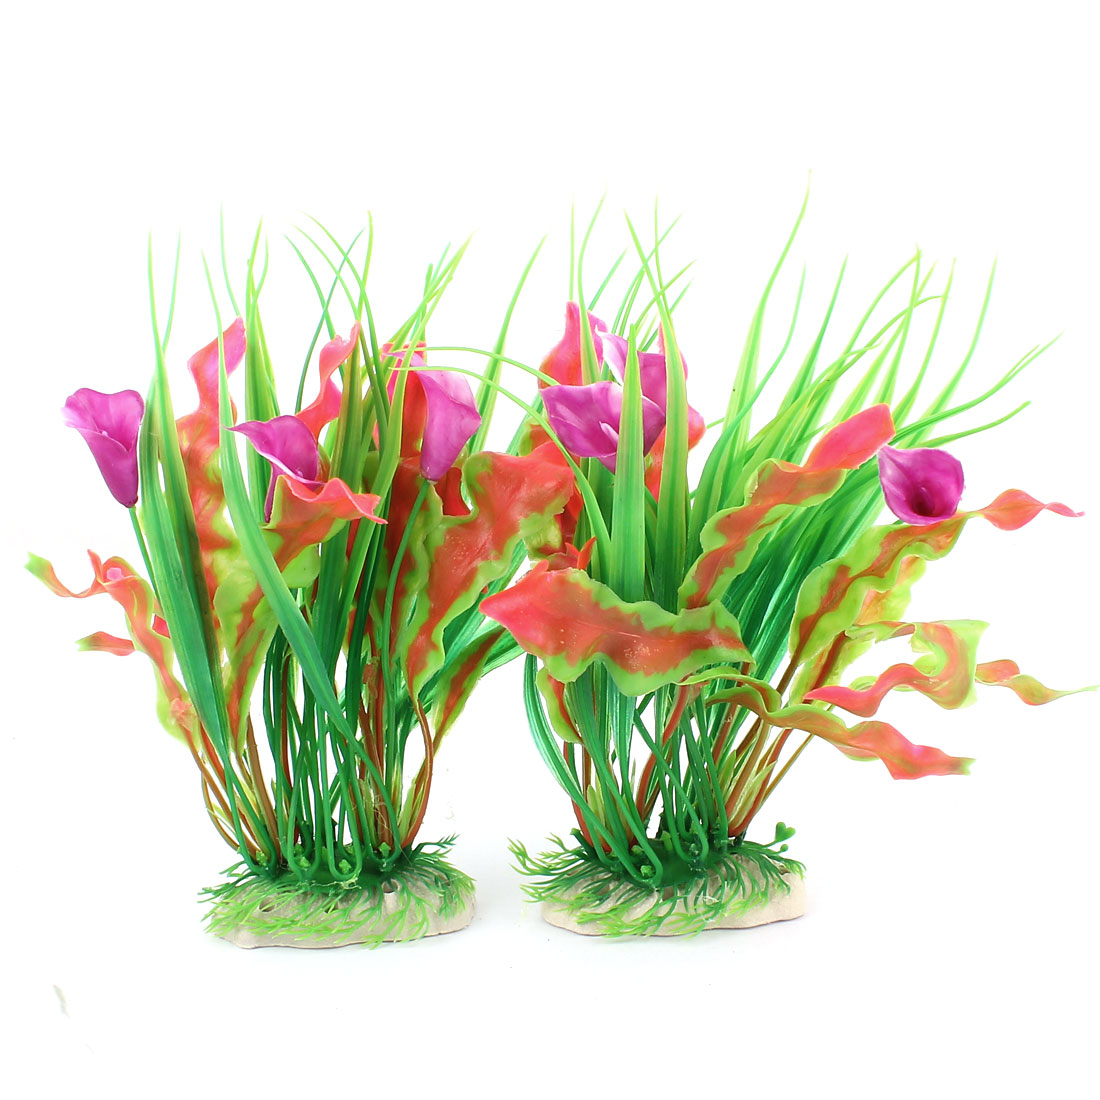 Artificial Underwater Plant Fish Tank Aquarium Decor 2 Pcs